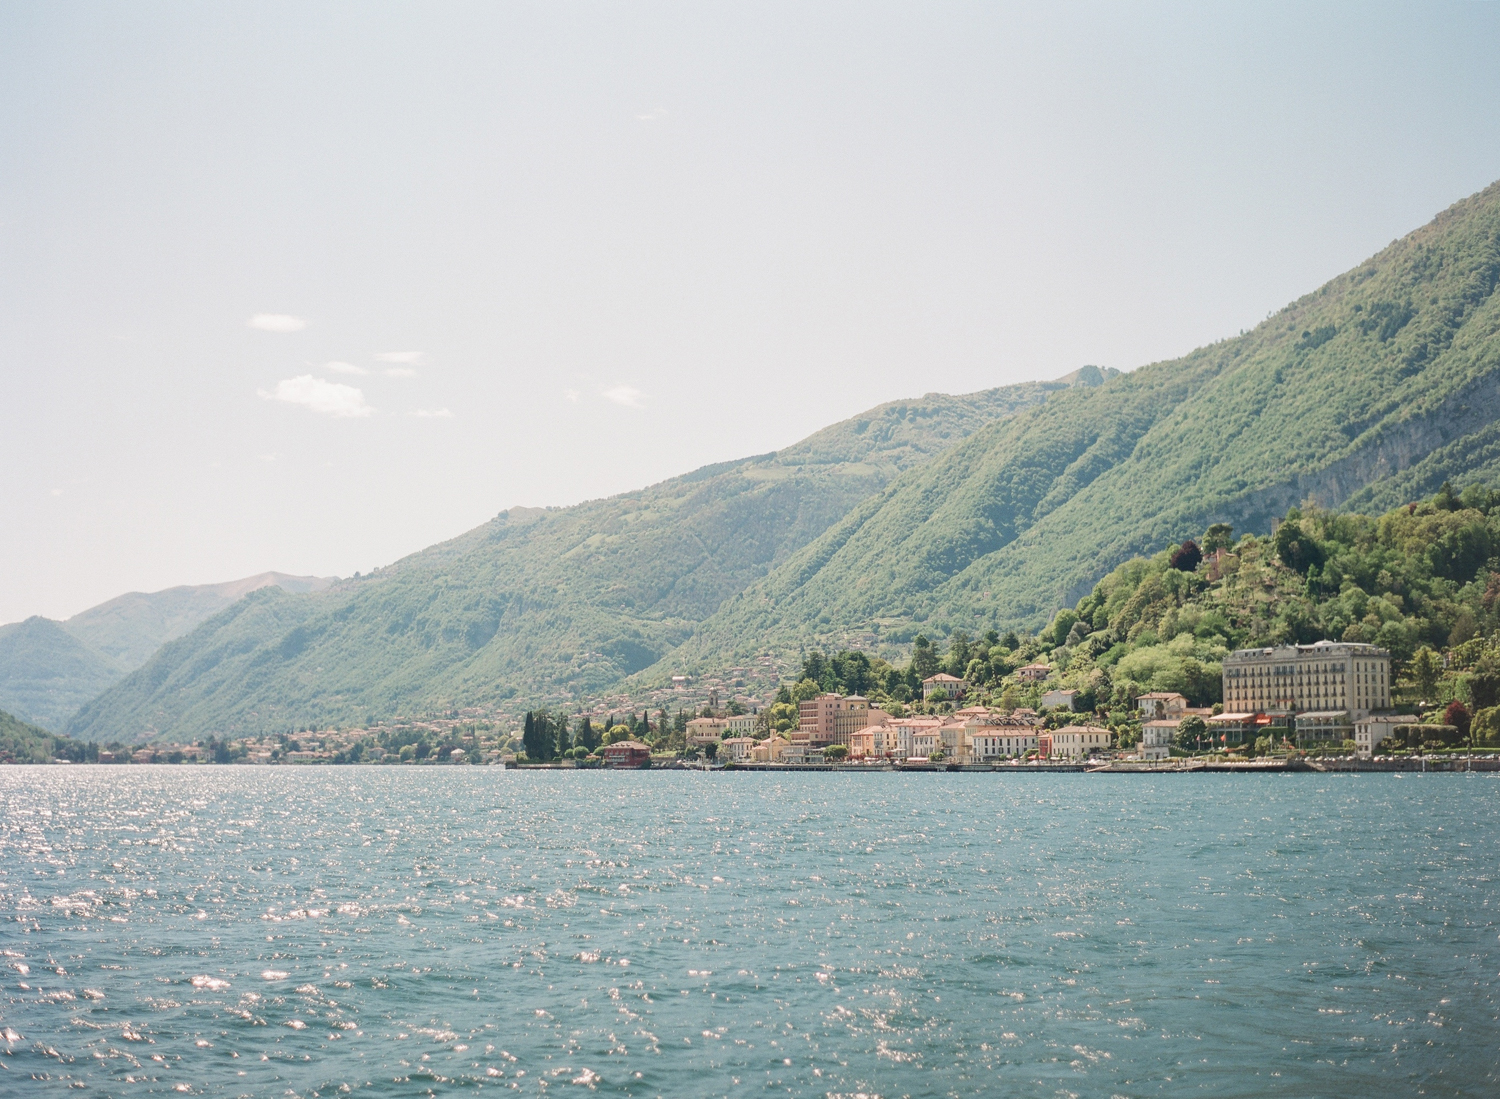 lake como film wedding photographer italy wedding photographer nikol bodnarova photography 01.JPG